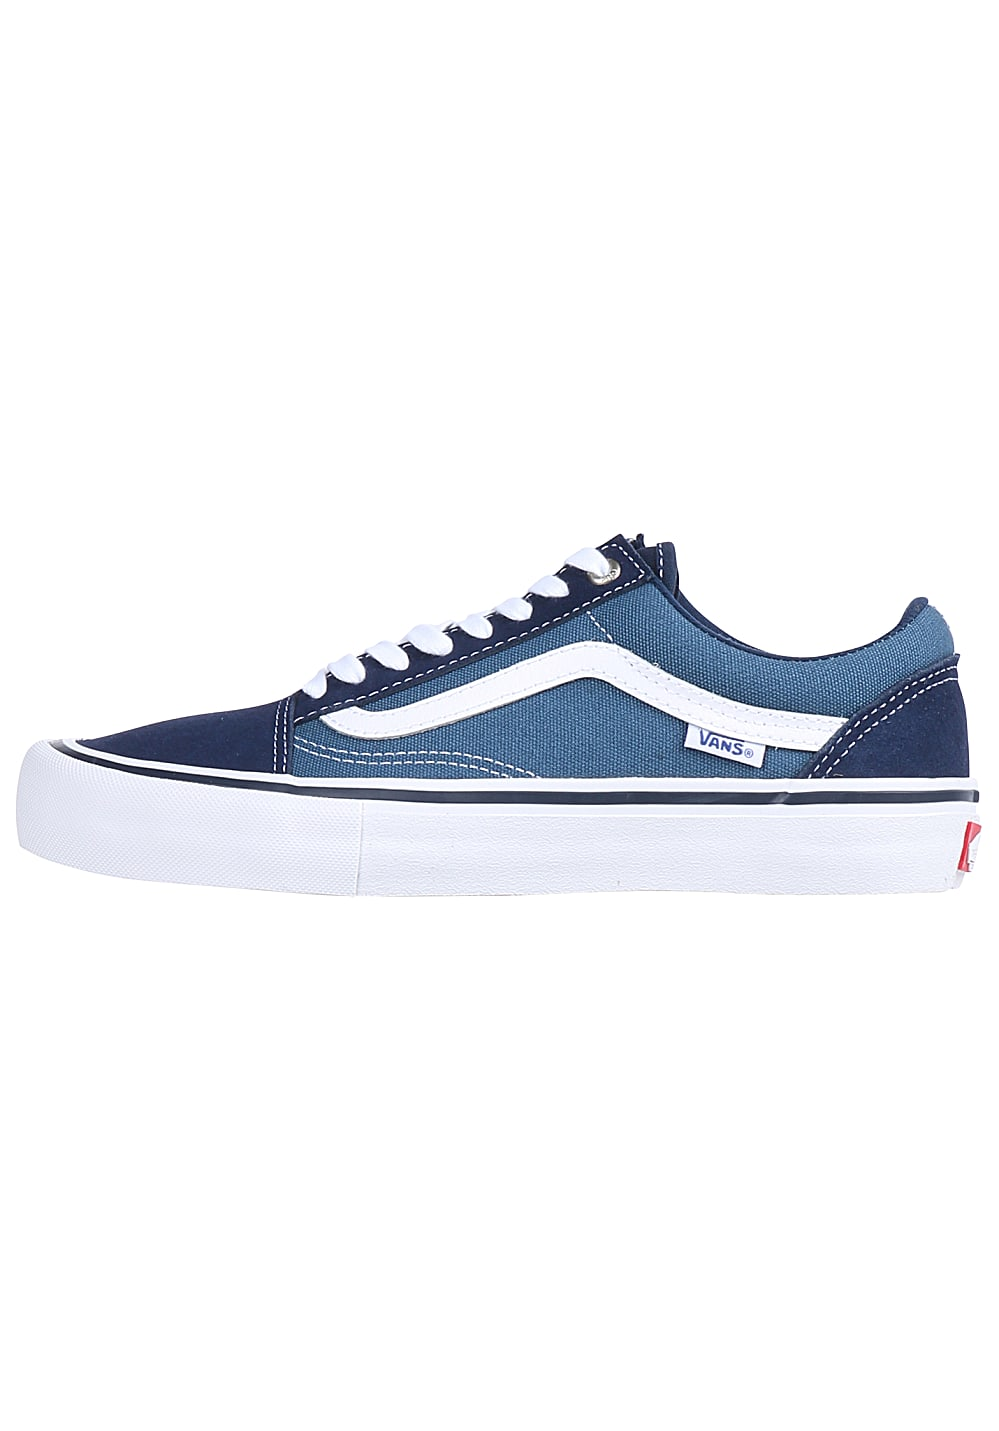 b48bfc5d0175c Vans Old Skool Pro - Zapatillas para Hombres - Azul - Planet Sports